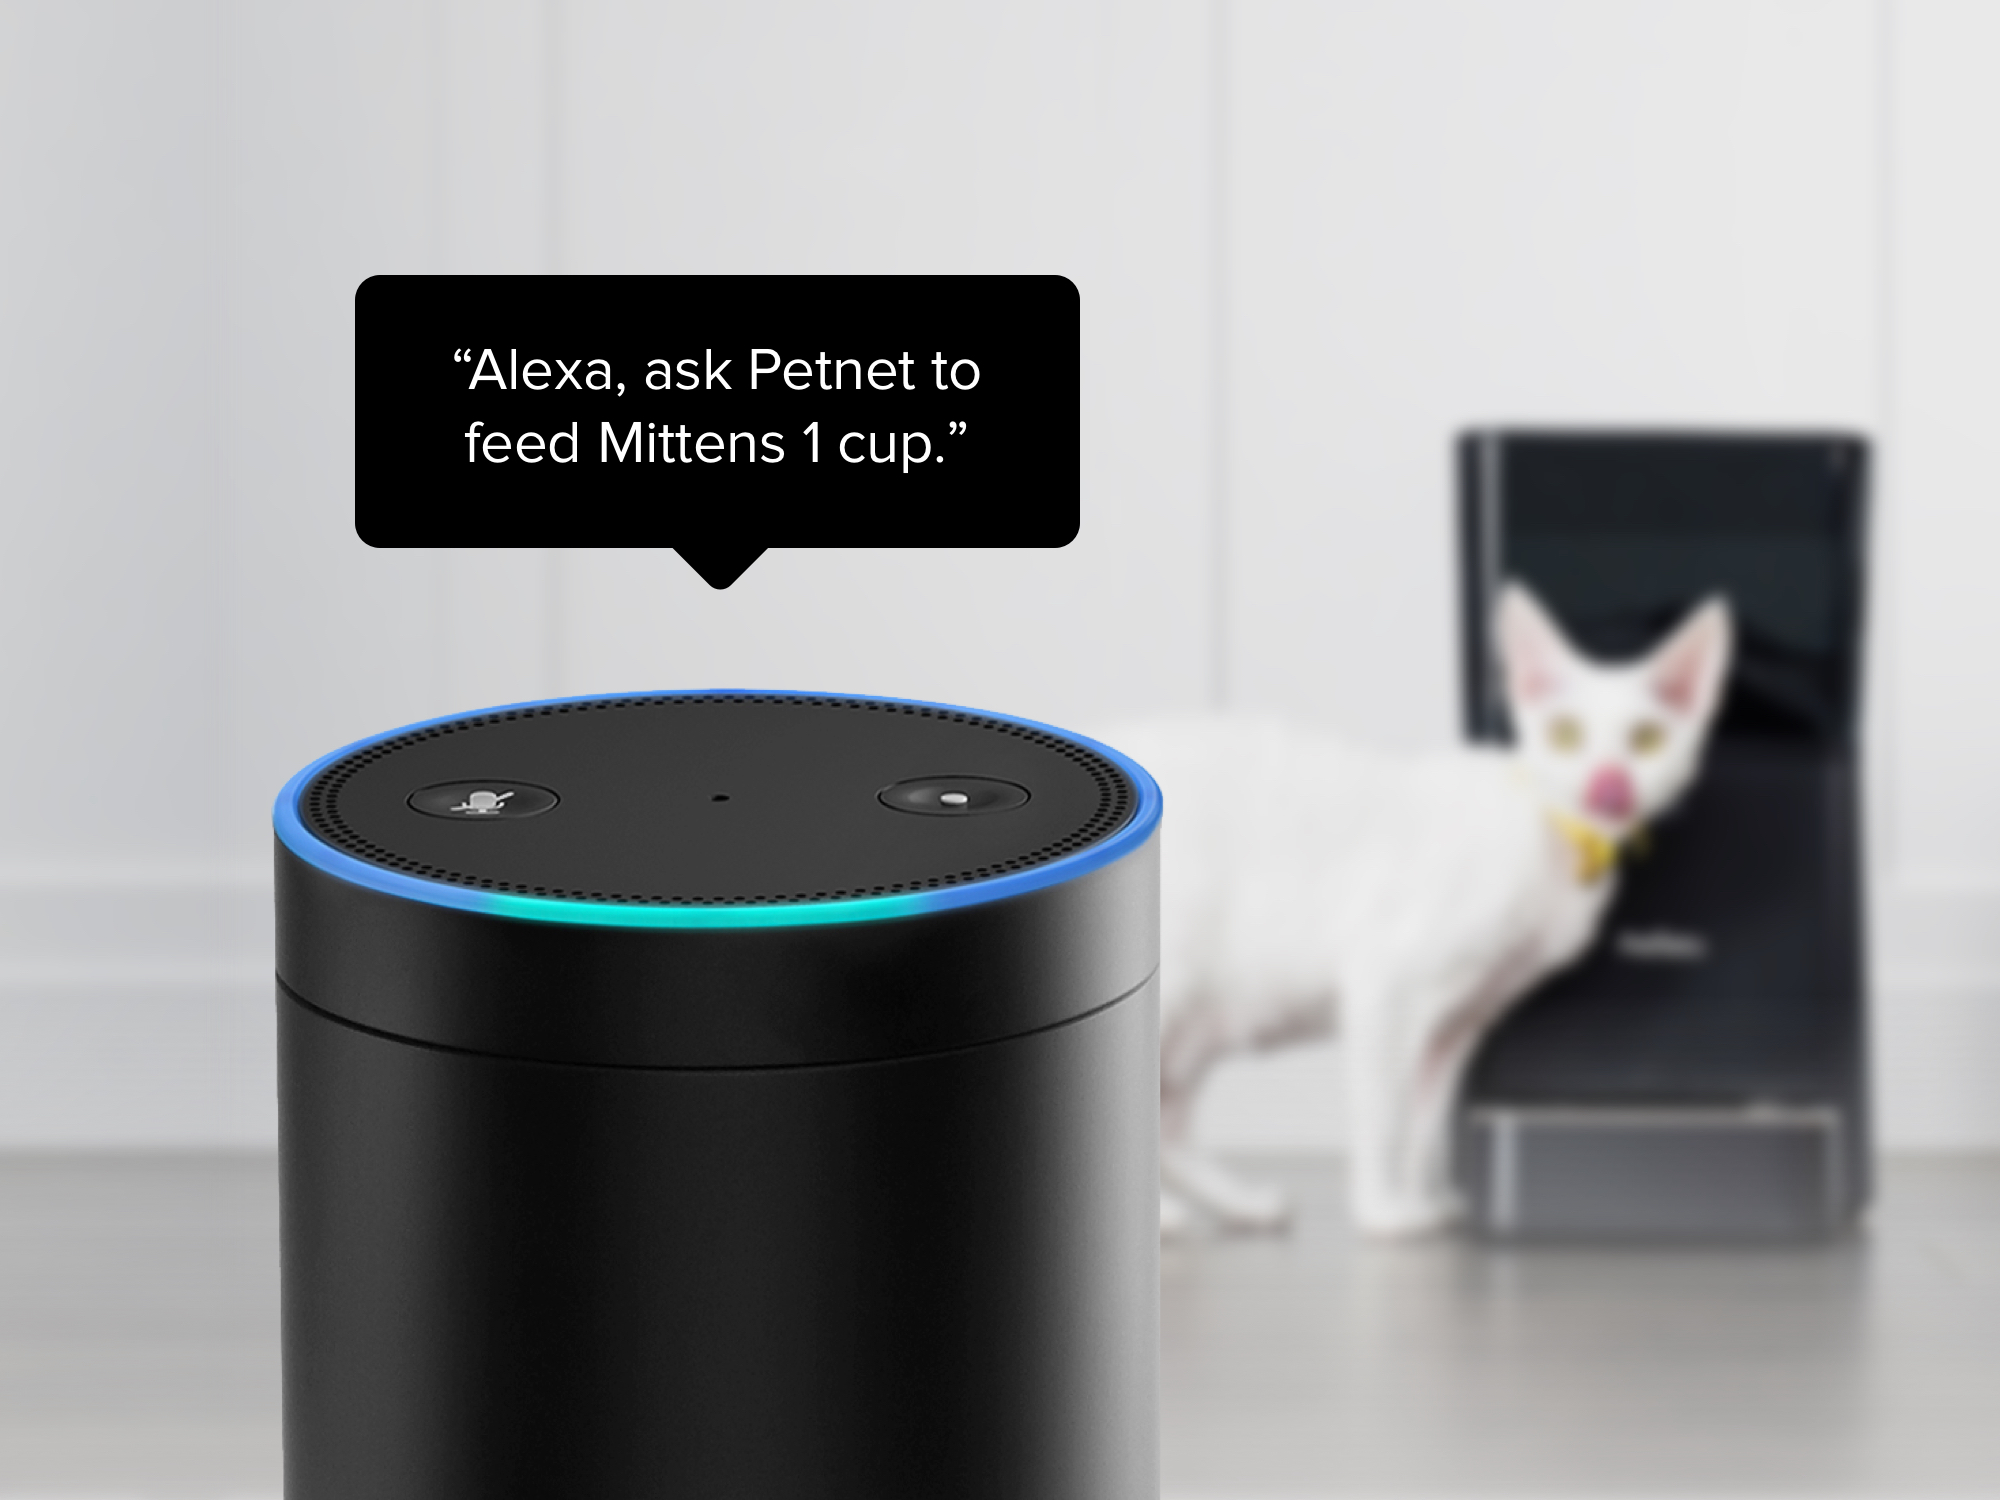 Microsoft shows off Alexa-Cortana integration, launches sign-up website for news